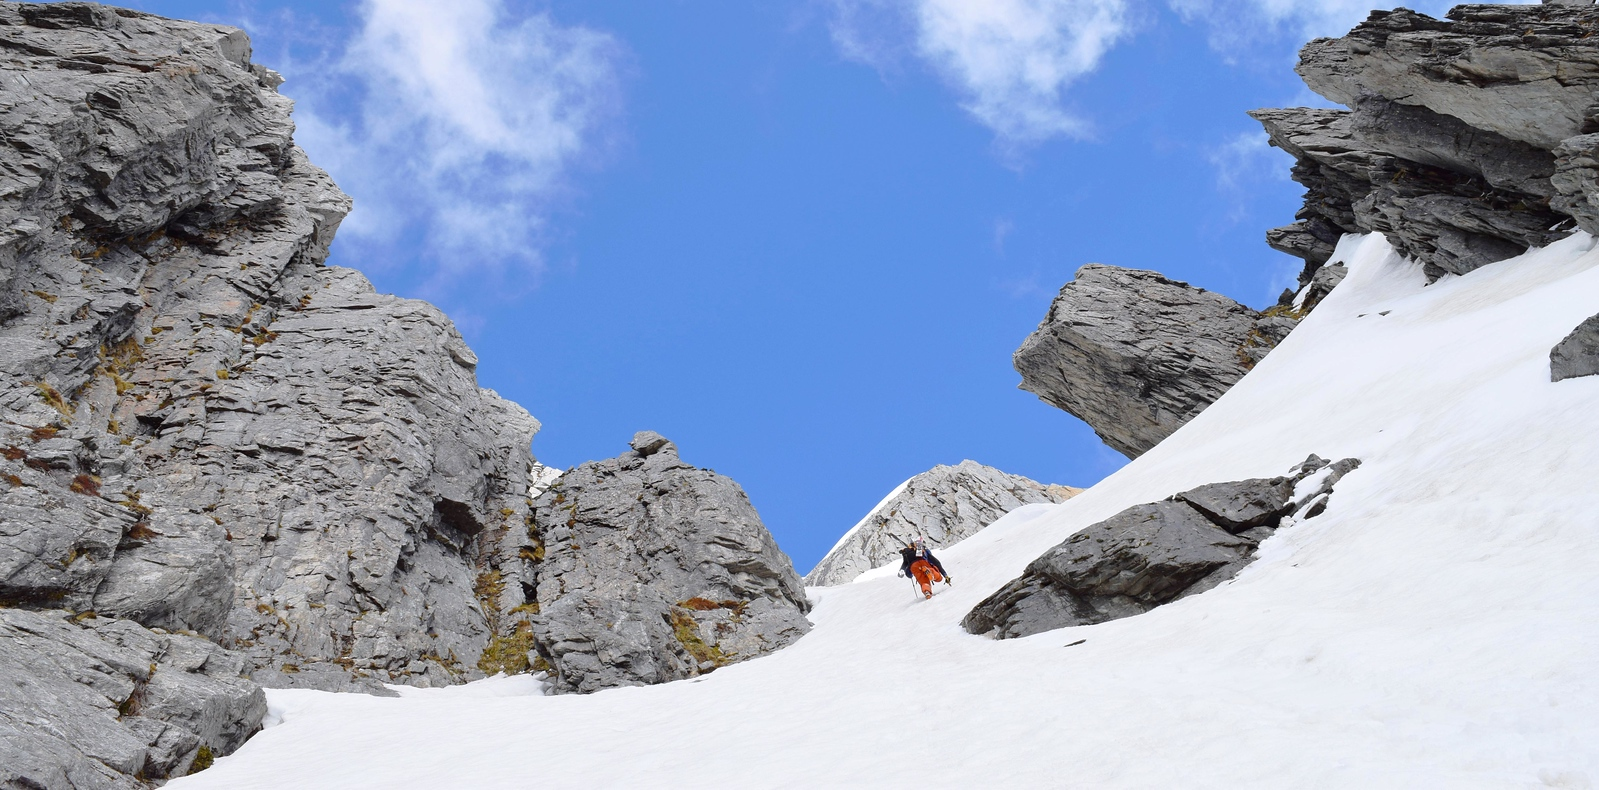 'Bivvy Rock couloir' on the lower slopes of Taiaha Peak